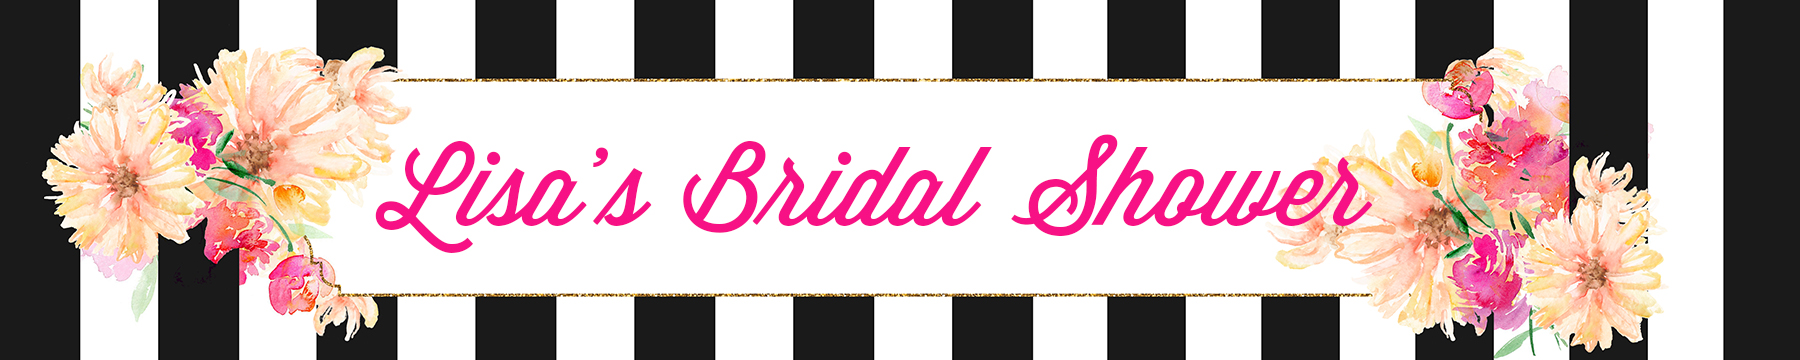 Top Bridal Shower Banners NP39